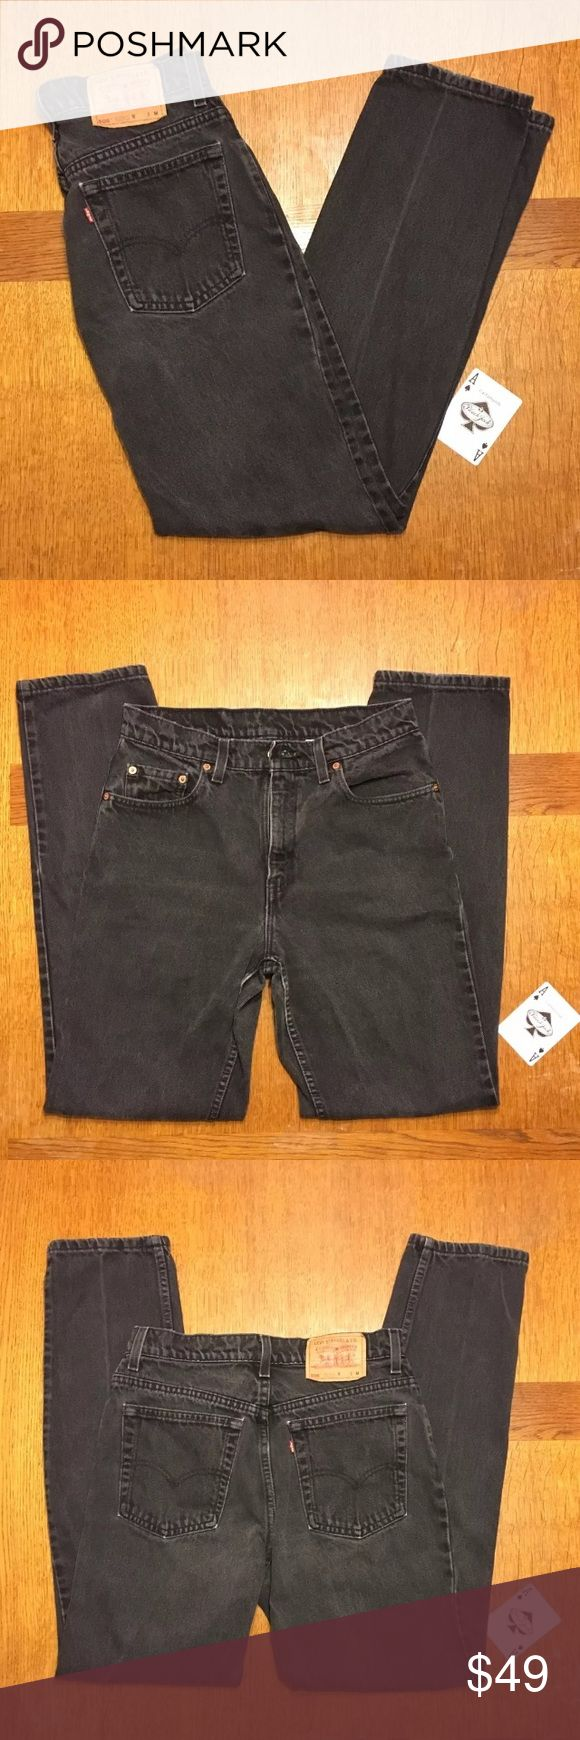 """Vtg Levi's 506 Reg Fit Straight Leg Jeans 10M #110 Vintage """"Made In The USA"""" Women's Levi's Reg Fit Straight Leg Black Jeans Size 10 Med.In Good Used Condition With Normal Wear-No Tears Or Stains.                               Measurements Laying Flat:                    Waist-29"""" Inseam-32"""" Hips-37"""" Thighs-18 Leg Opening-14"""" Levi's Jeans Straight Leg"""